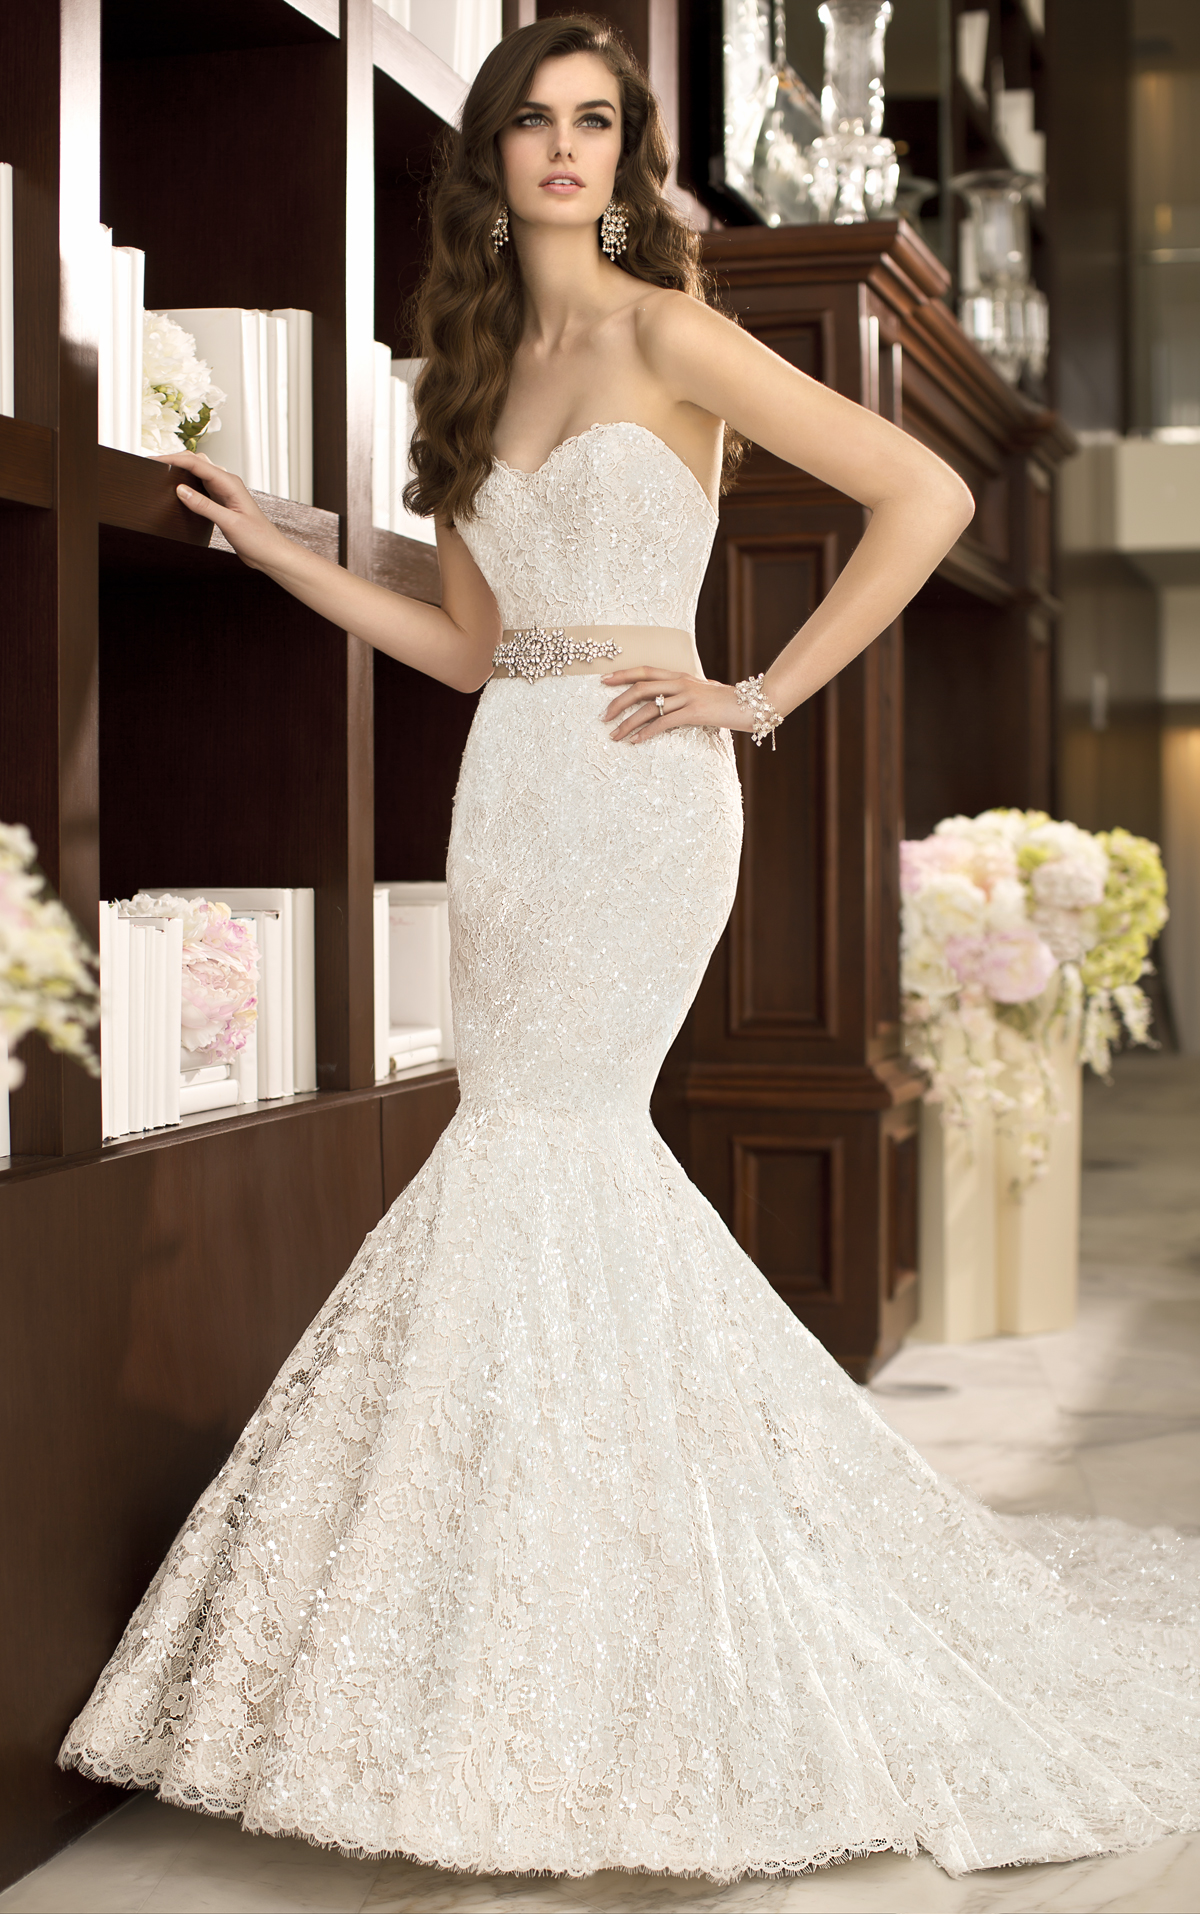 2 Essense Of Australia Wedding Dresses